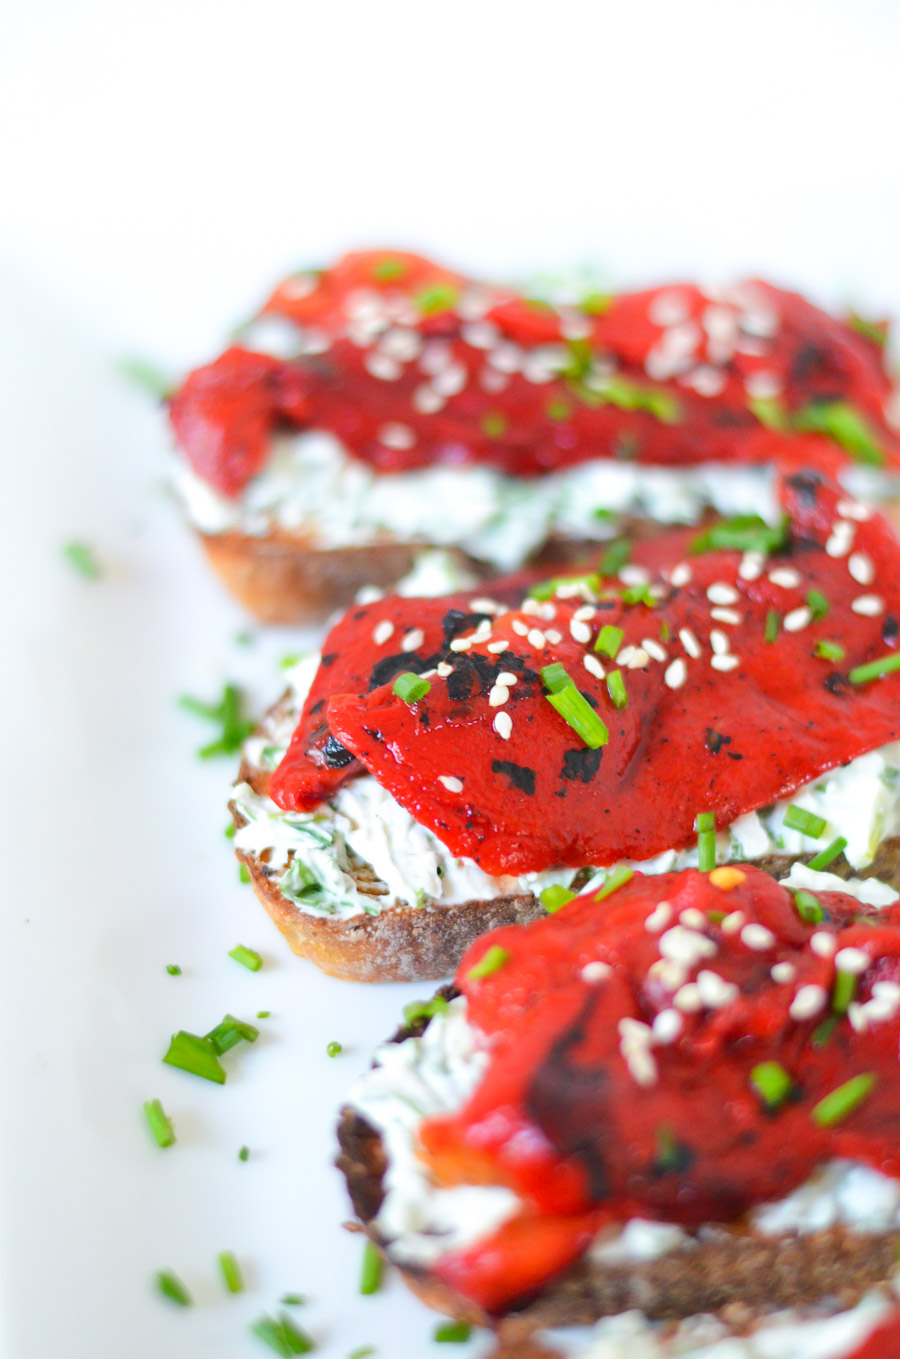 Party of 8 - Make Ahead Menu - Roasted Bell Pepper Goat Cheese Toast Appetizer Recipe - Luci's Morsels - LA Lifestyle Blog